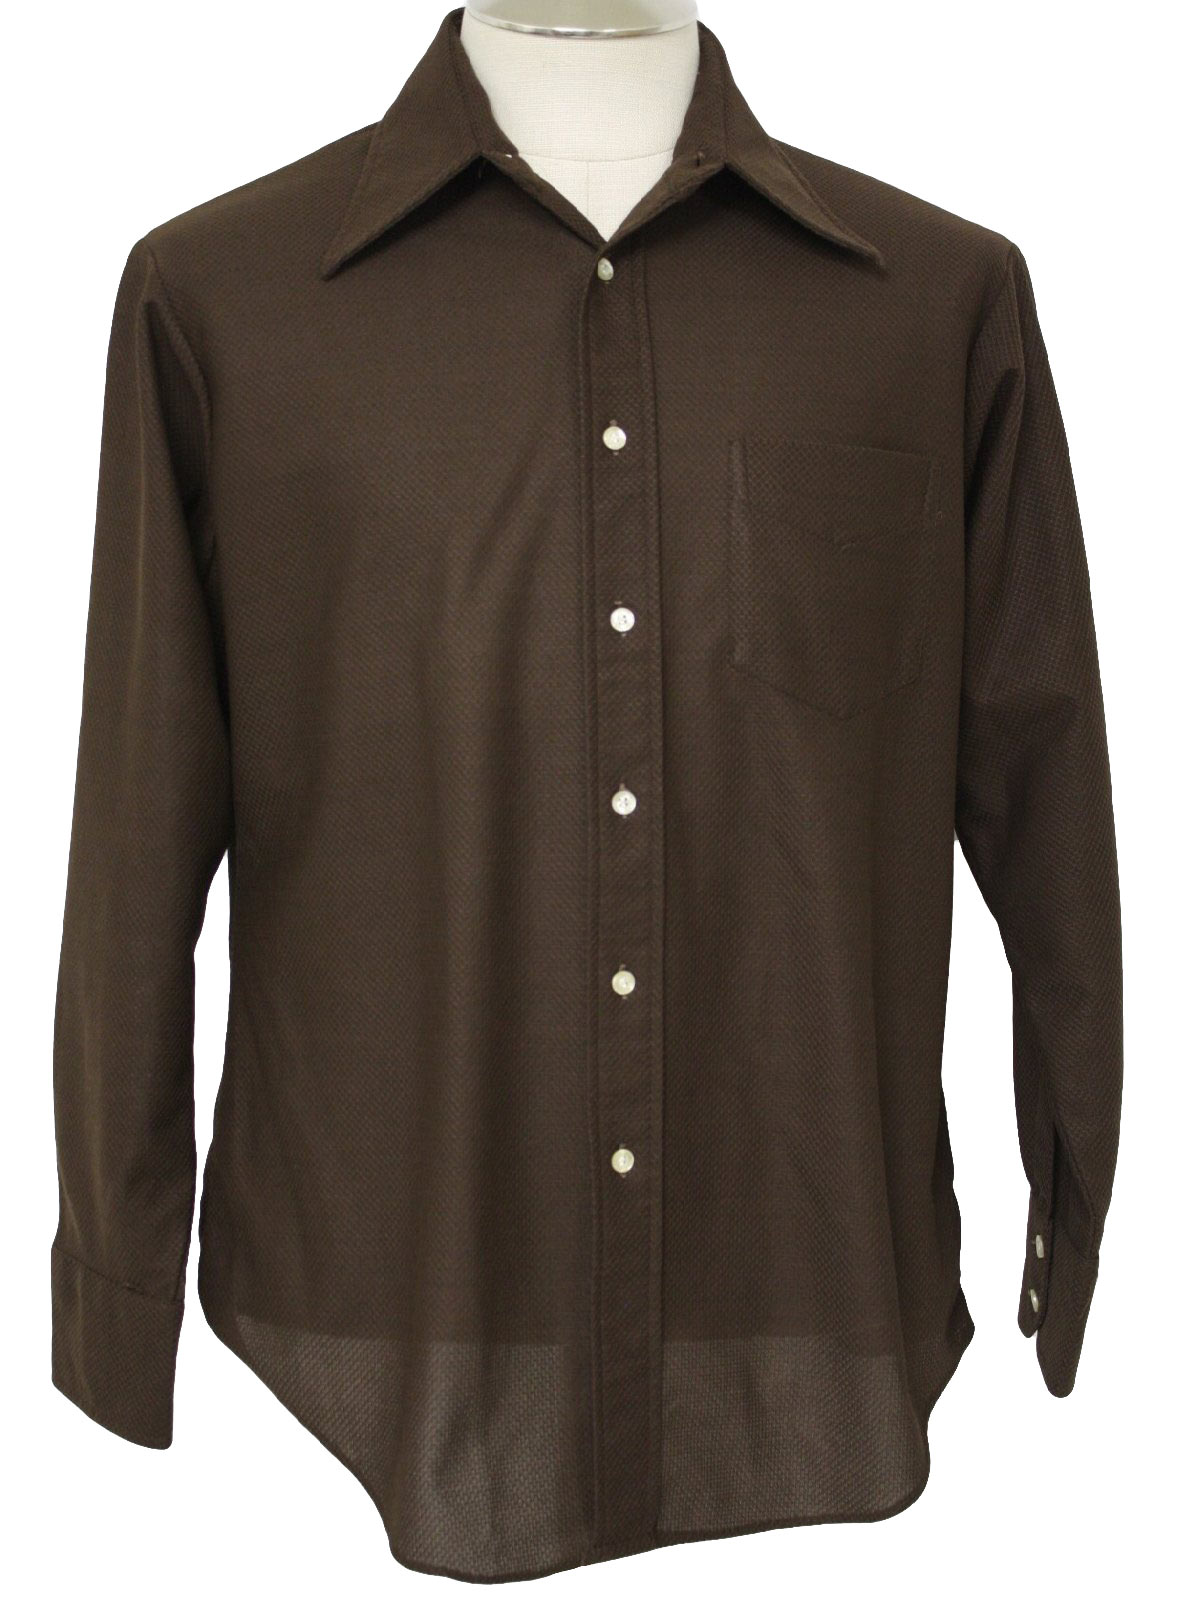 Collection Mens Polyester Shirts Pictures Emzascom